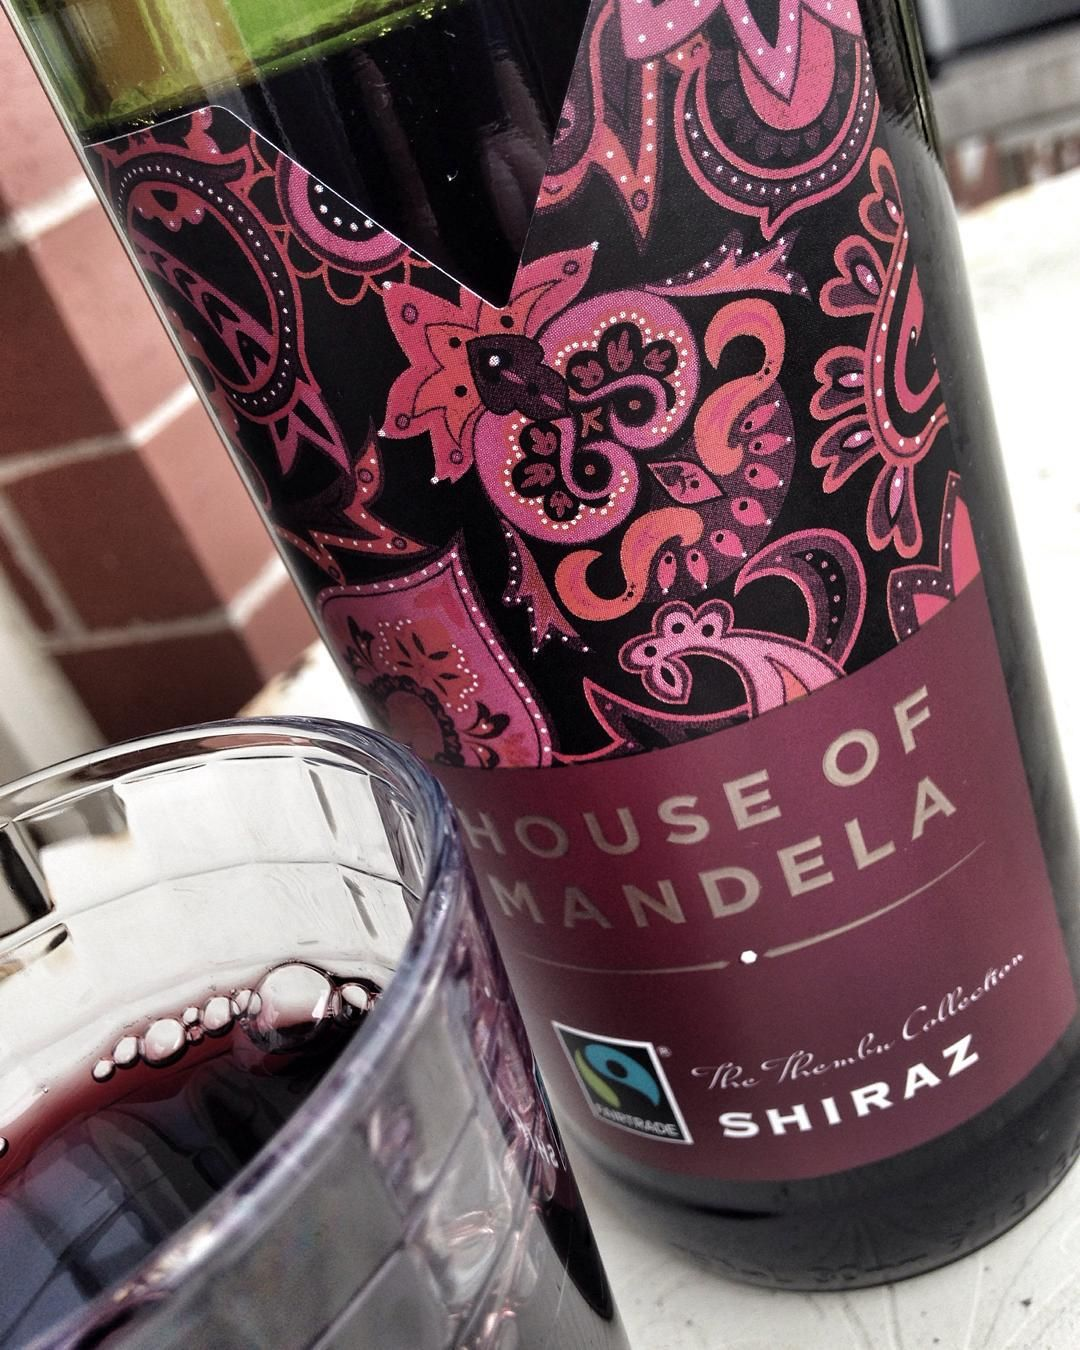 House of Mandela 2013 Shiraz now @thenslc. Smokey meaty red fruit $14.99. by therealwineguy